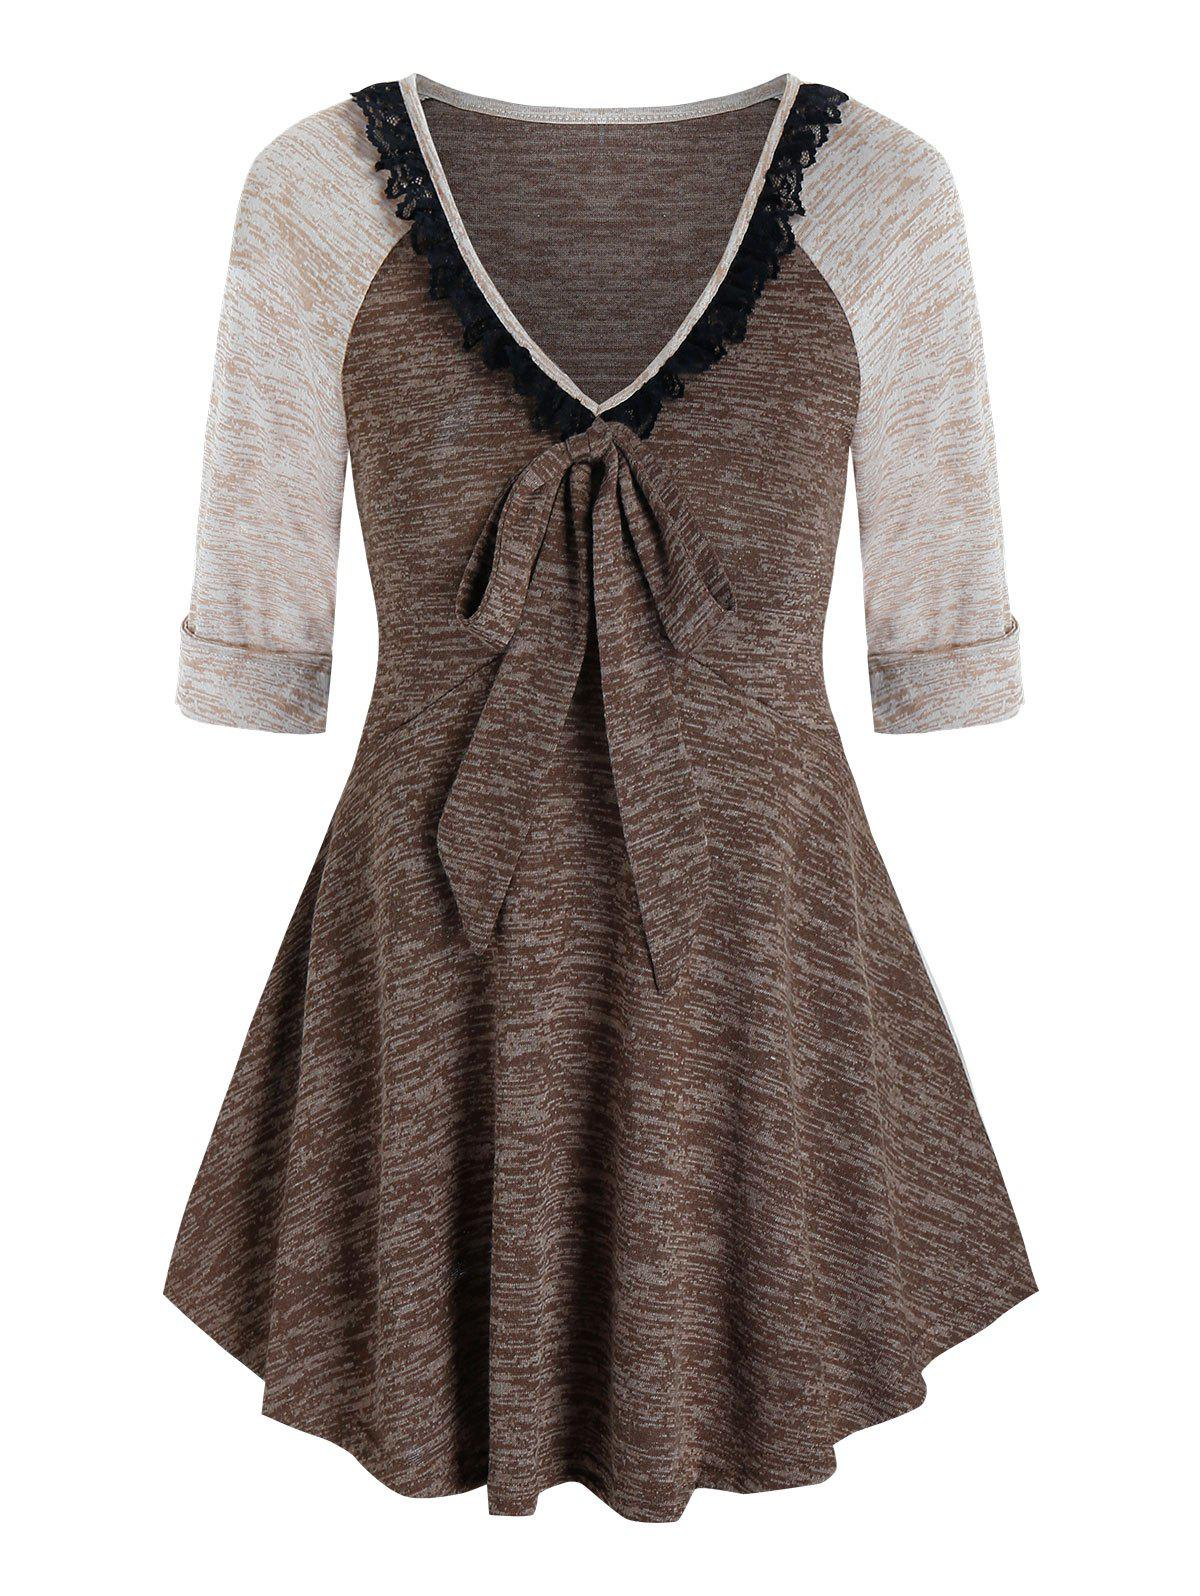 Hot Contrast Space Dye Print Lace Insert Bowknot T-shirt